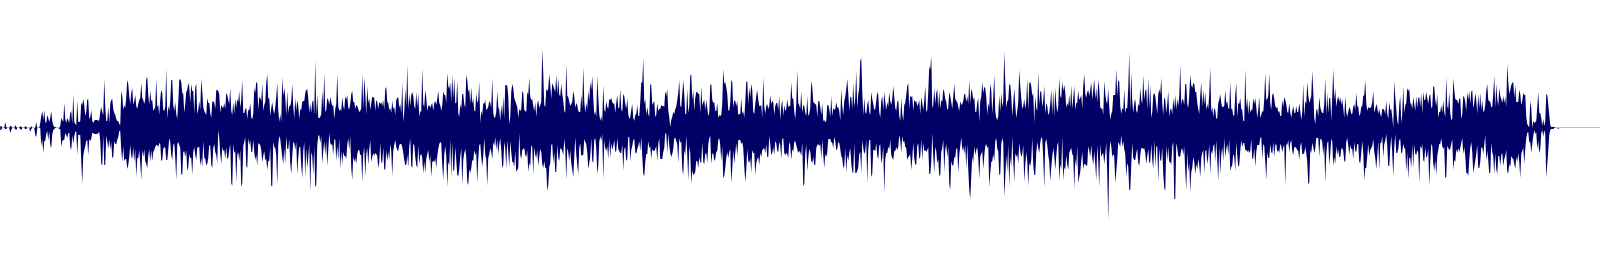 waveform of track #151629